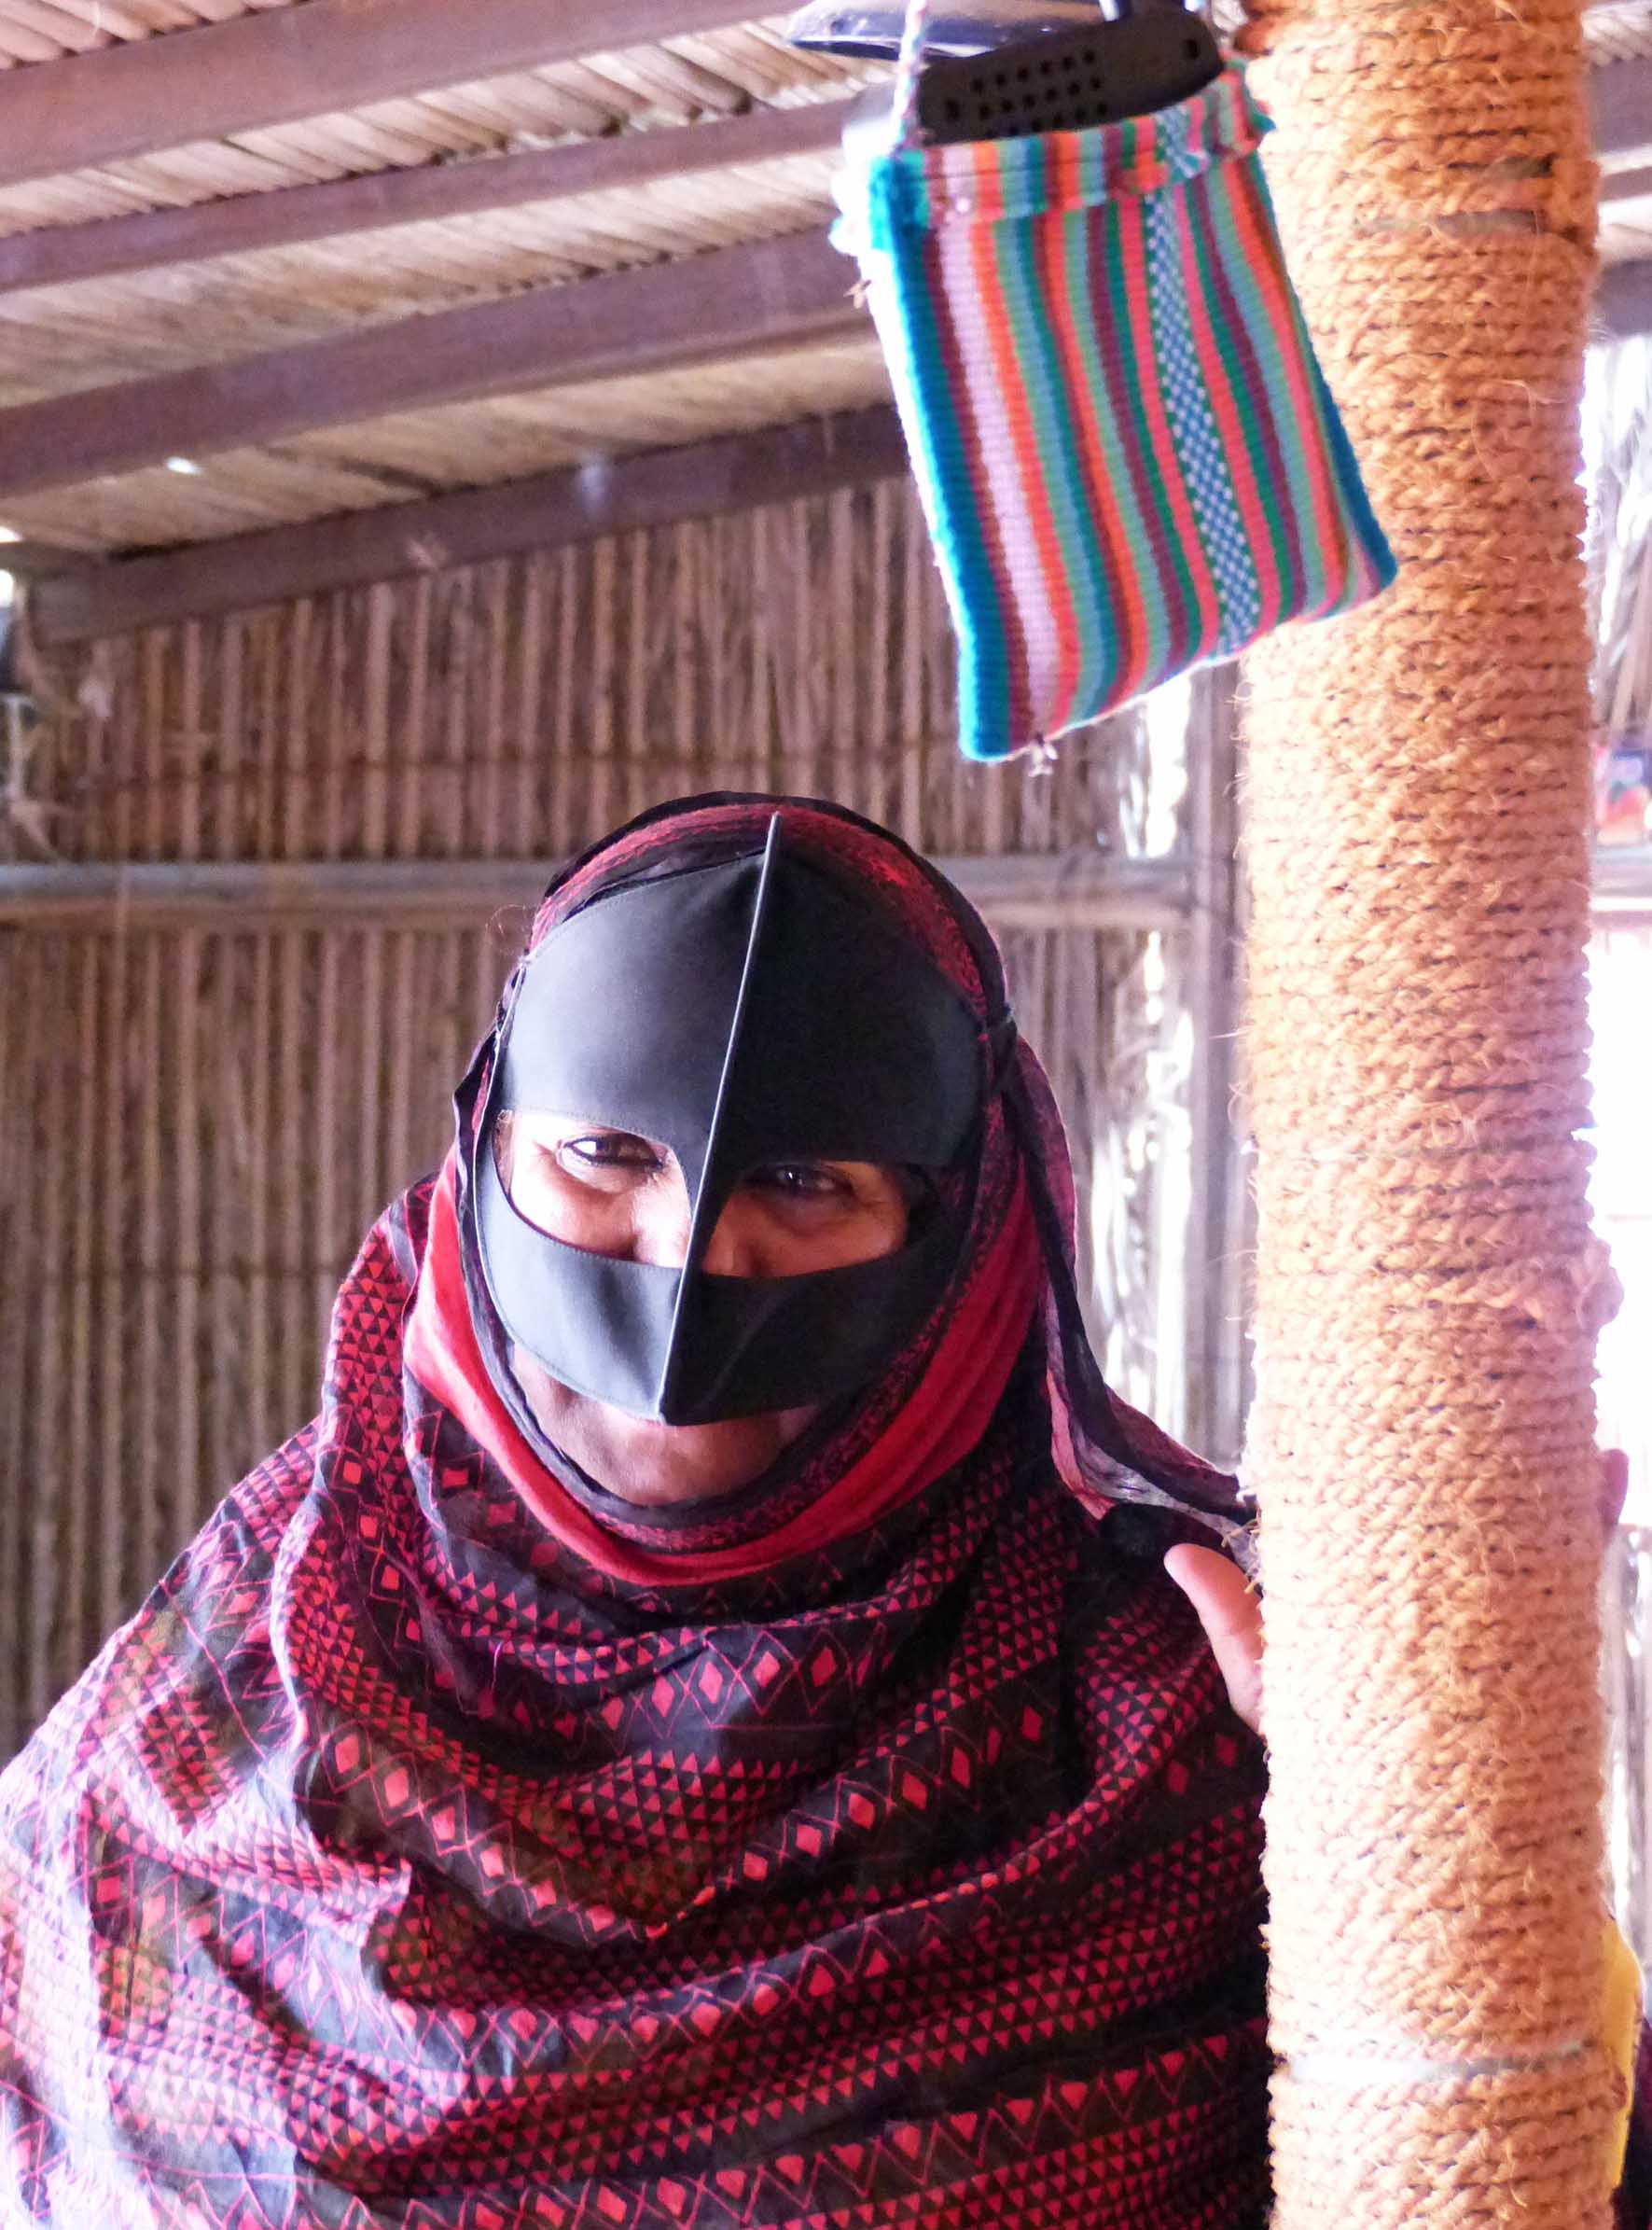 Lady in traditional Bedouin dress